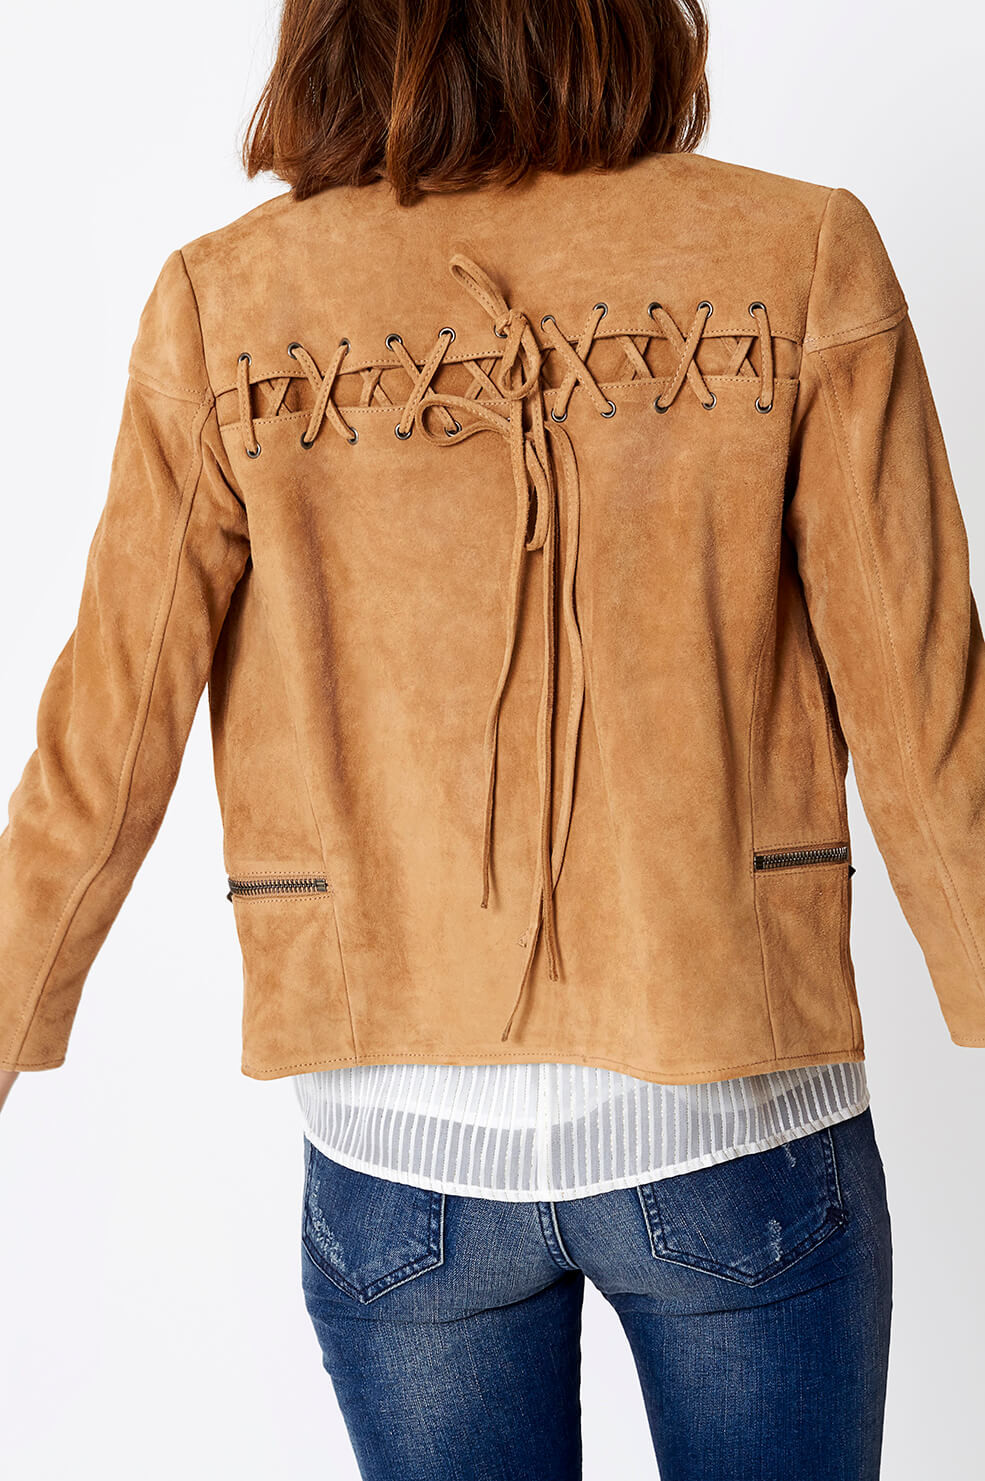 Anine Bing - Suede Jacket with Lacing detail      https://www.aninebing.com/collections/jackets/products/suede-jacket-with-lacing